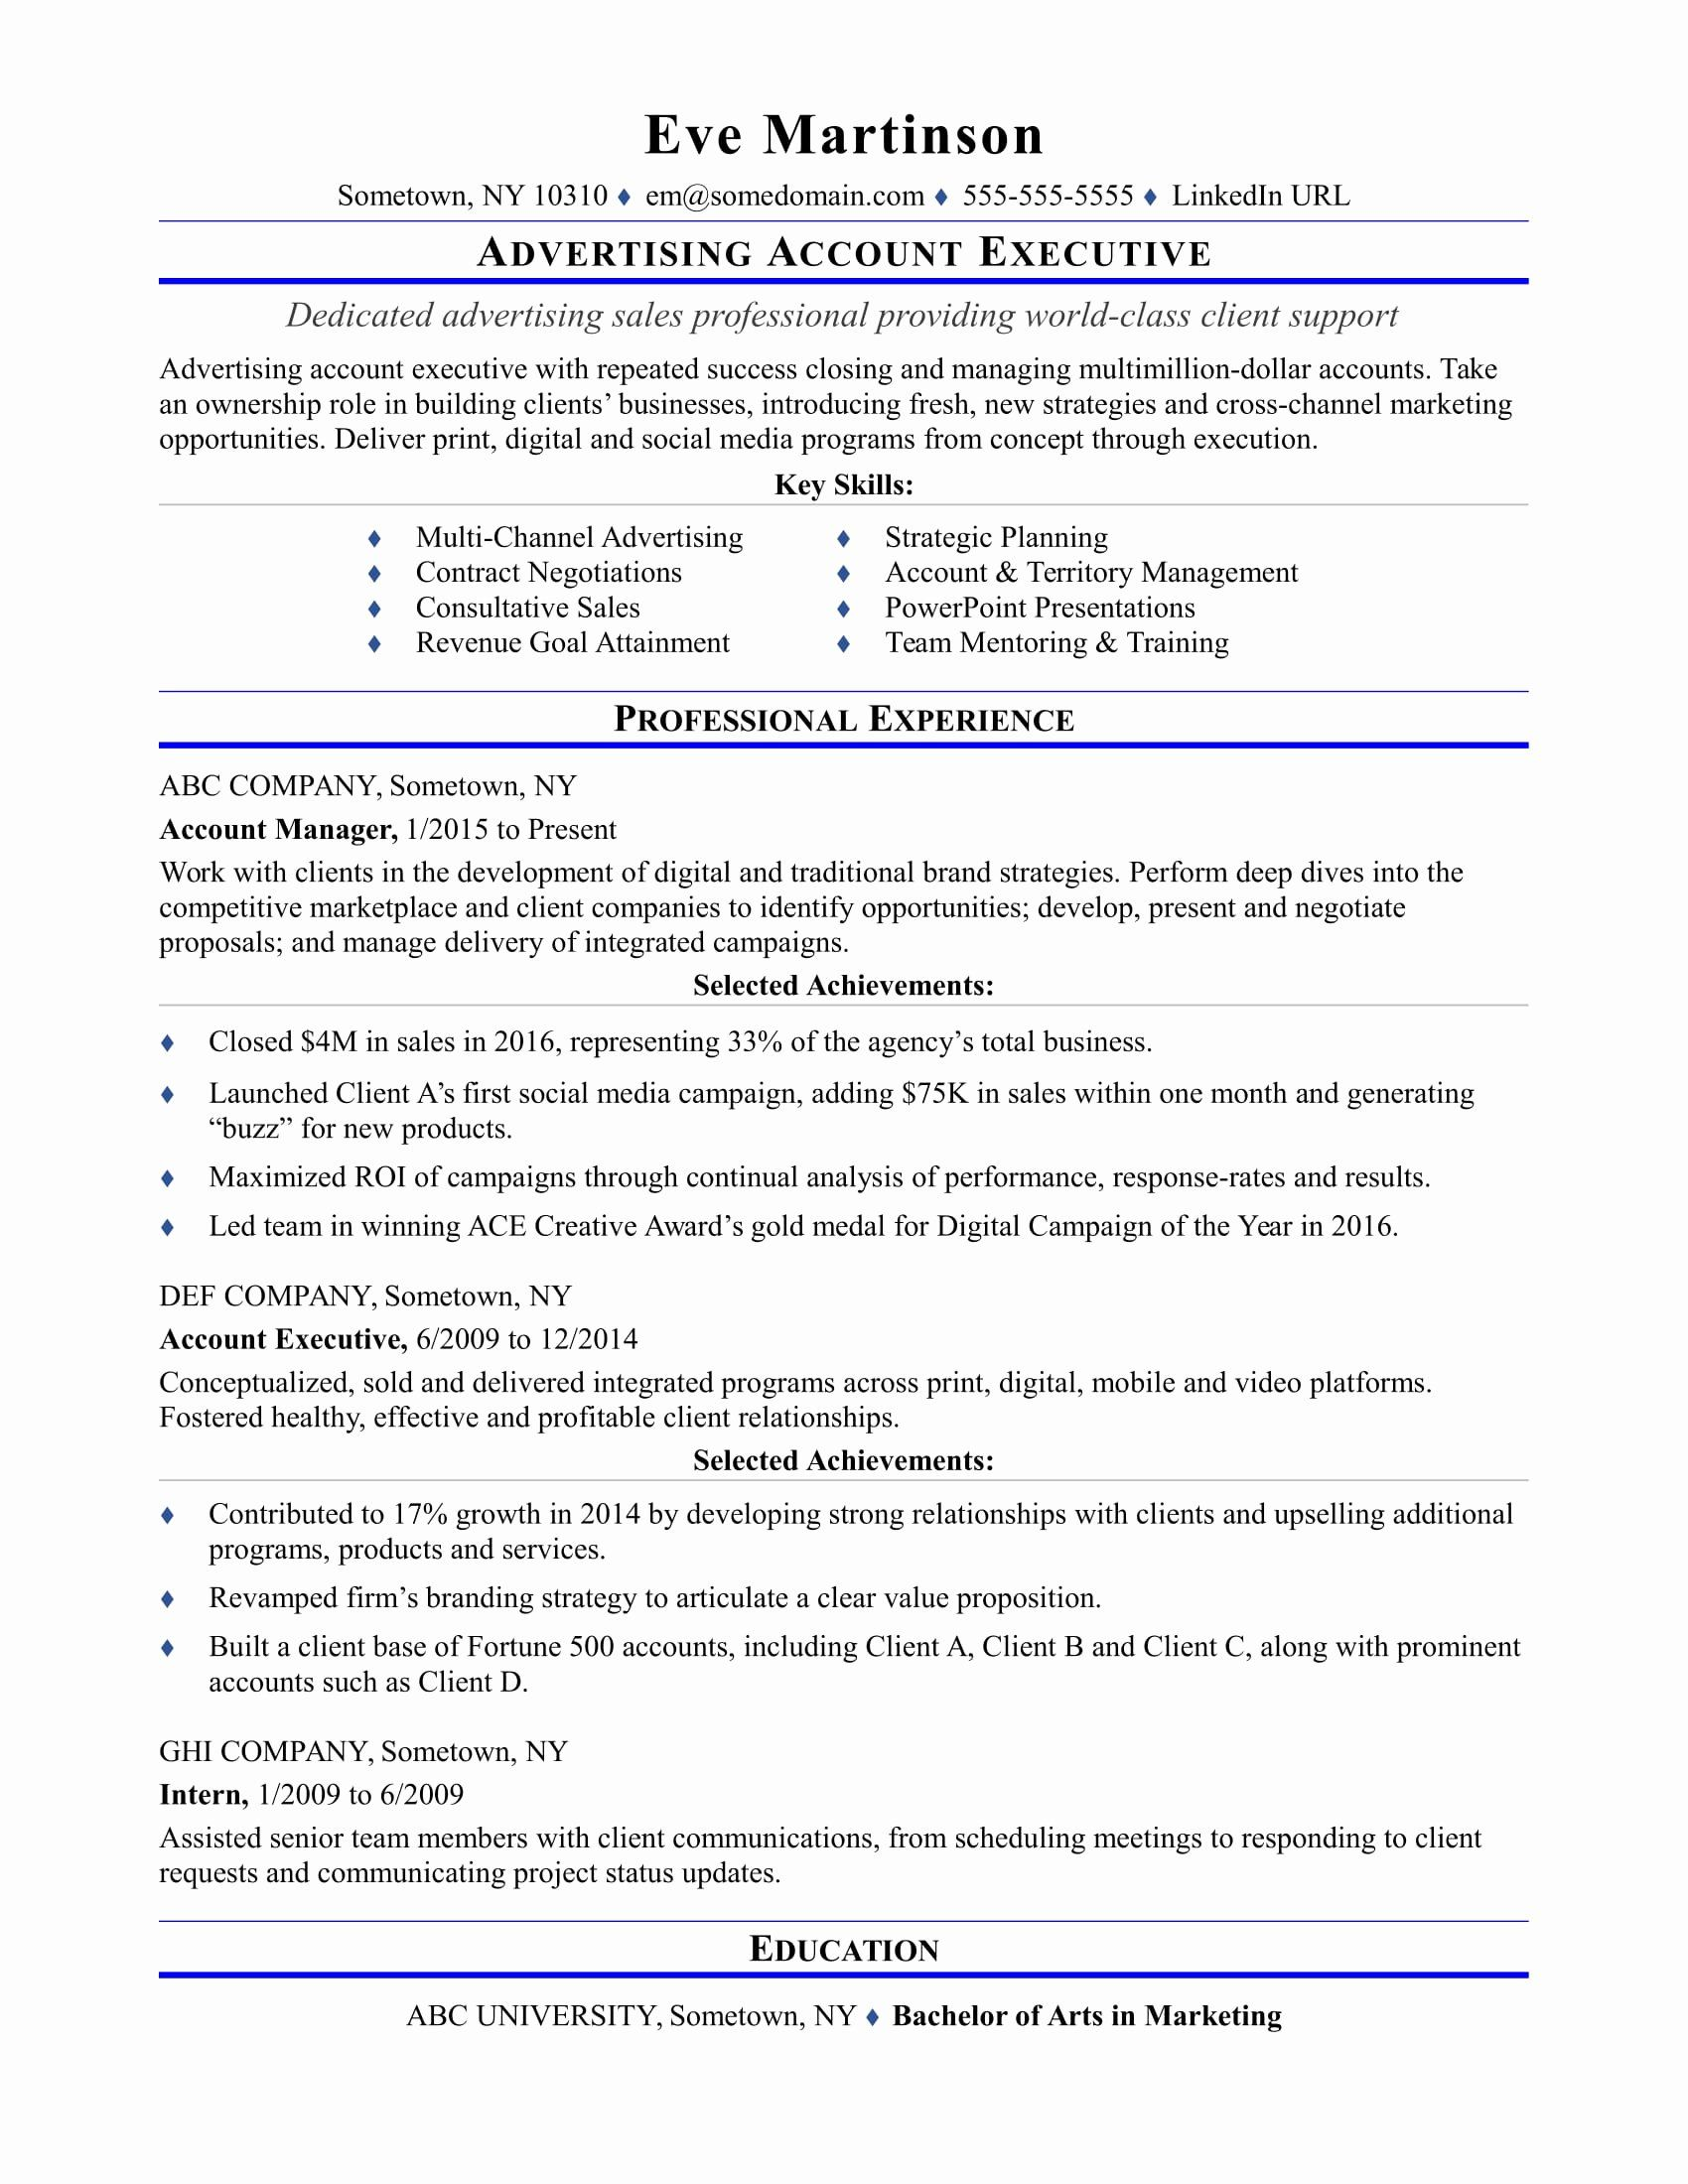 Accounting Executive Resume Samples Best Of Sample Resume For An Advertising Account Executive Executive Resume Resume Examples Account Executive